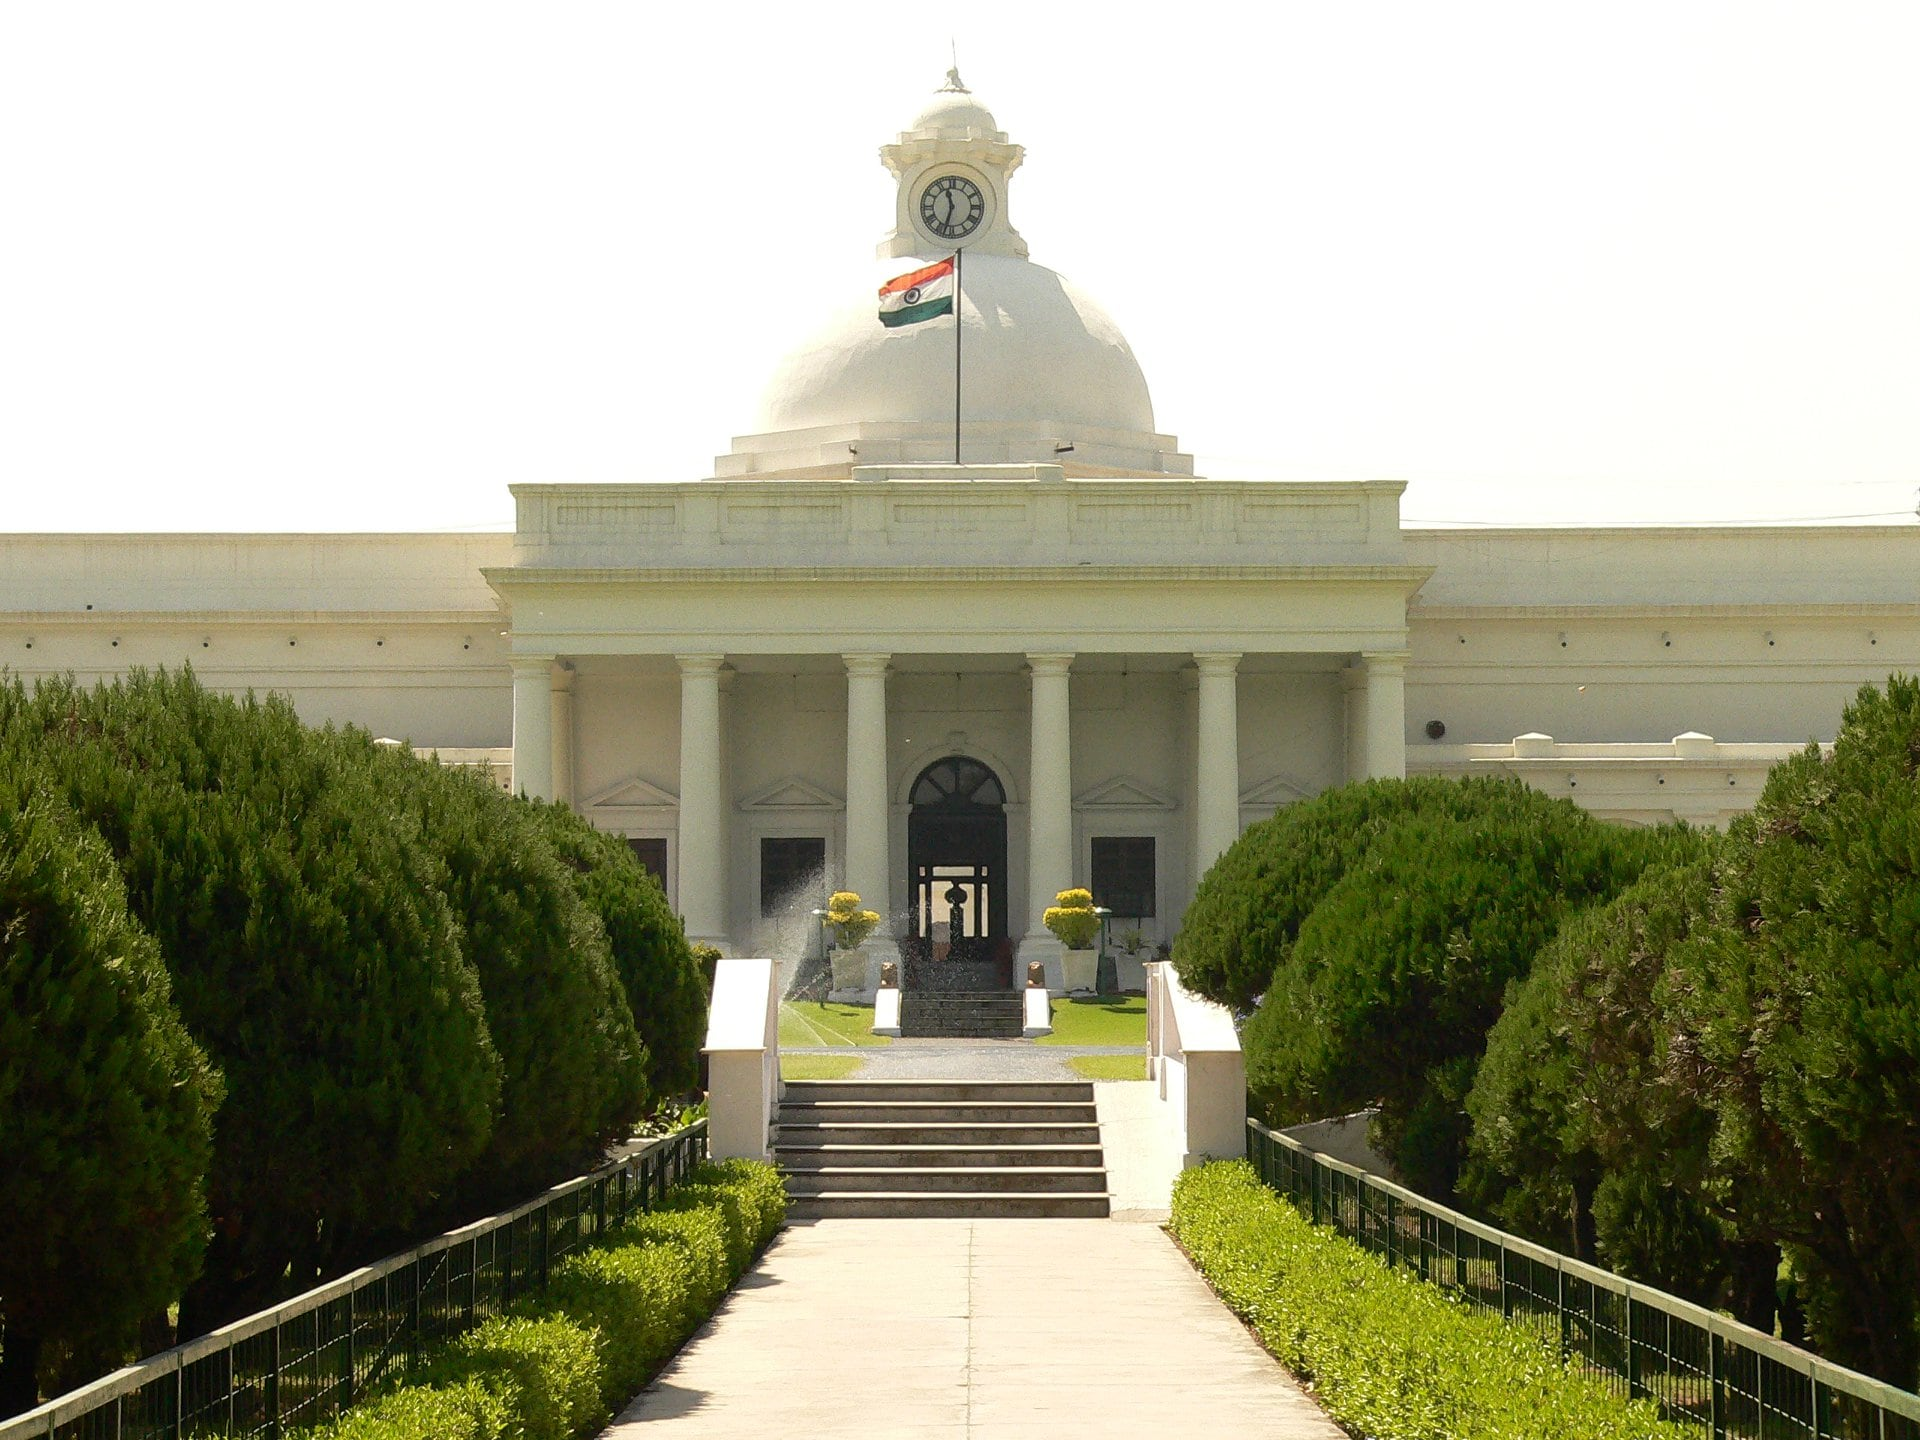 9: IIT Roorkee: The Indian Institute of Technology Roorkee (IIT-R) is ranked ninth in the report. The college was established in 1857 in British India by the then lieutenant governor, Sir James Thomason. It was formerly called Thomason College of Civil Engineering. It was converted to an IIT in 2001. (Image: Facebook/IIT Roorkee)